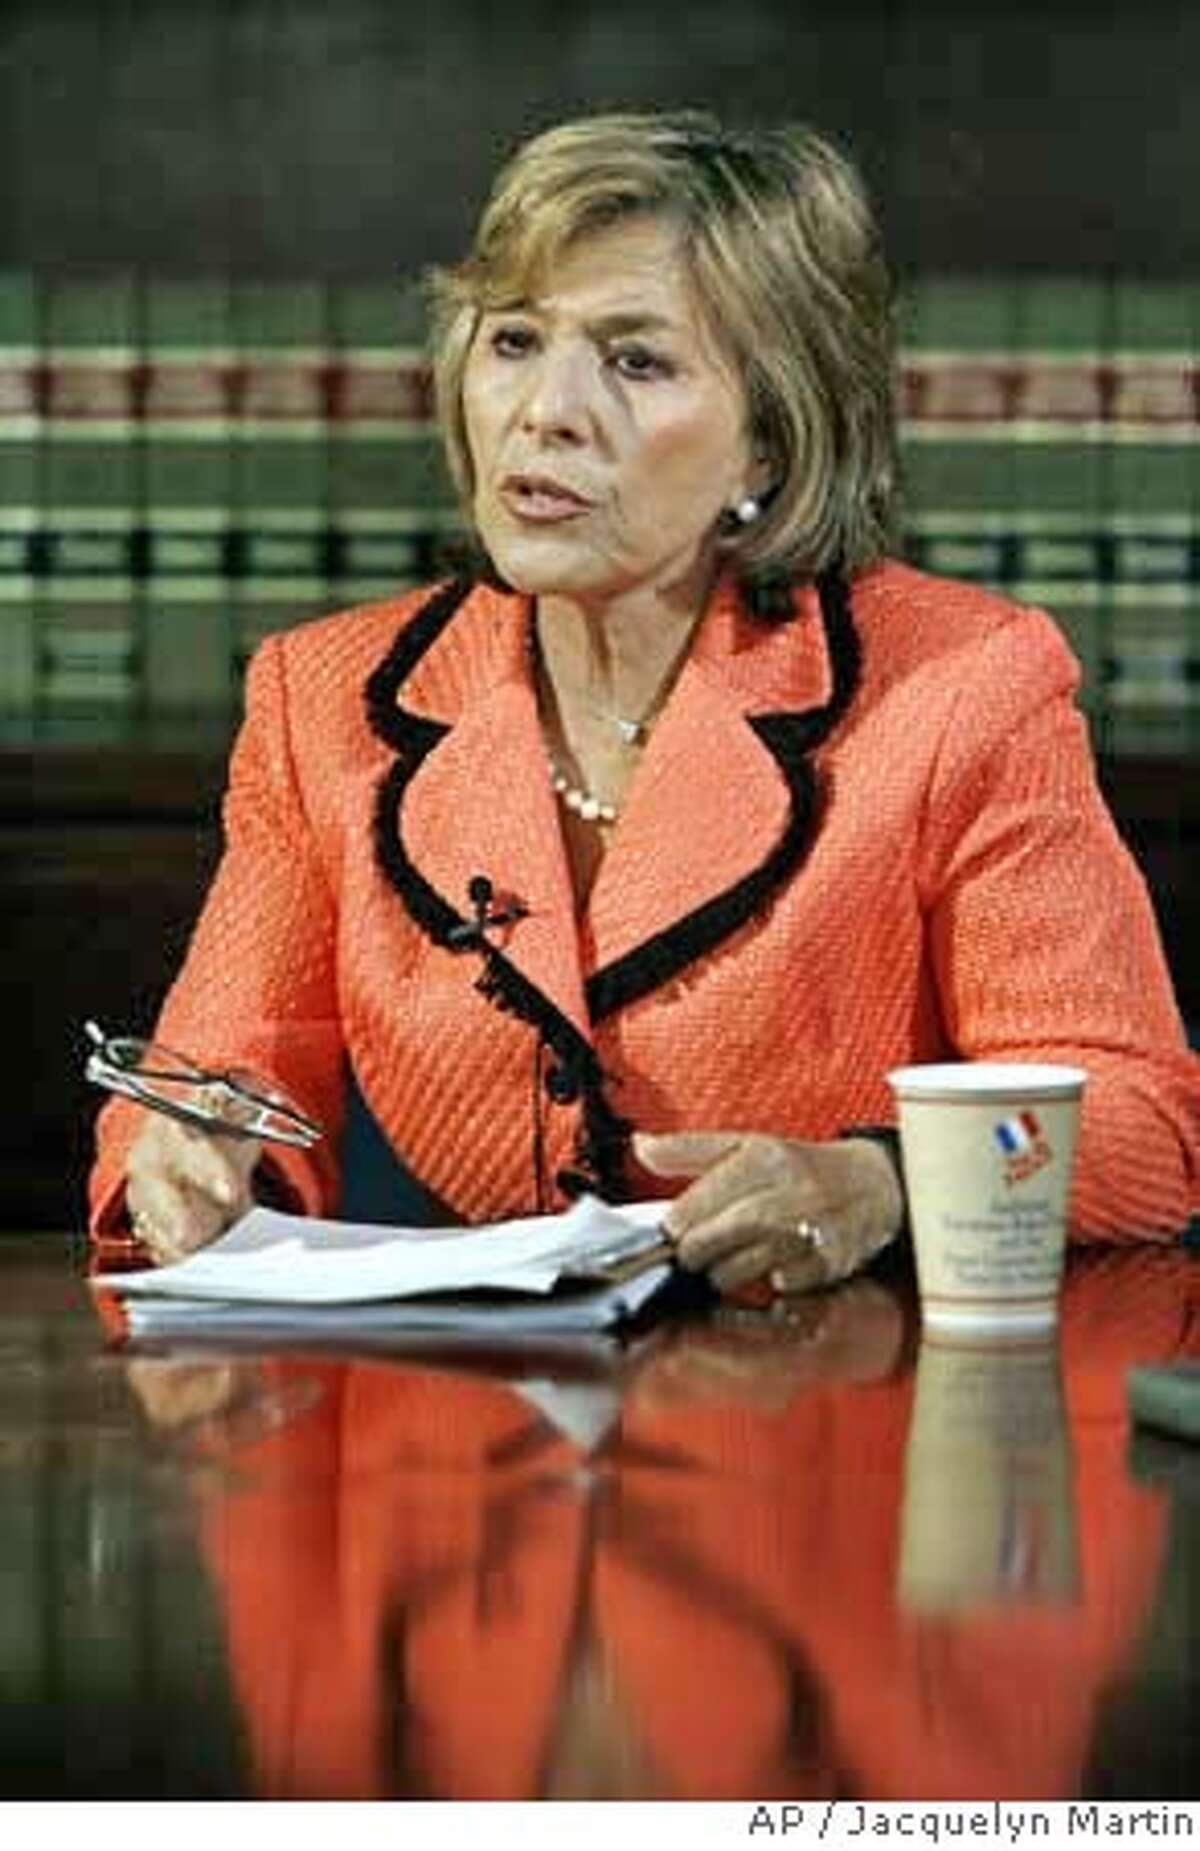 Sen. Barbara Boxer, D-Calif., the incoming chairman of the Senate Environment Committee, takes part in an interview with The Associated Press in Washington, Tuesday, Dec. 5, 2006. (AP Photo /Jacquelyn Martin)